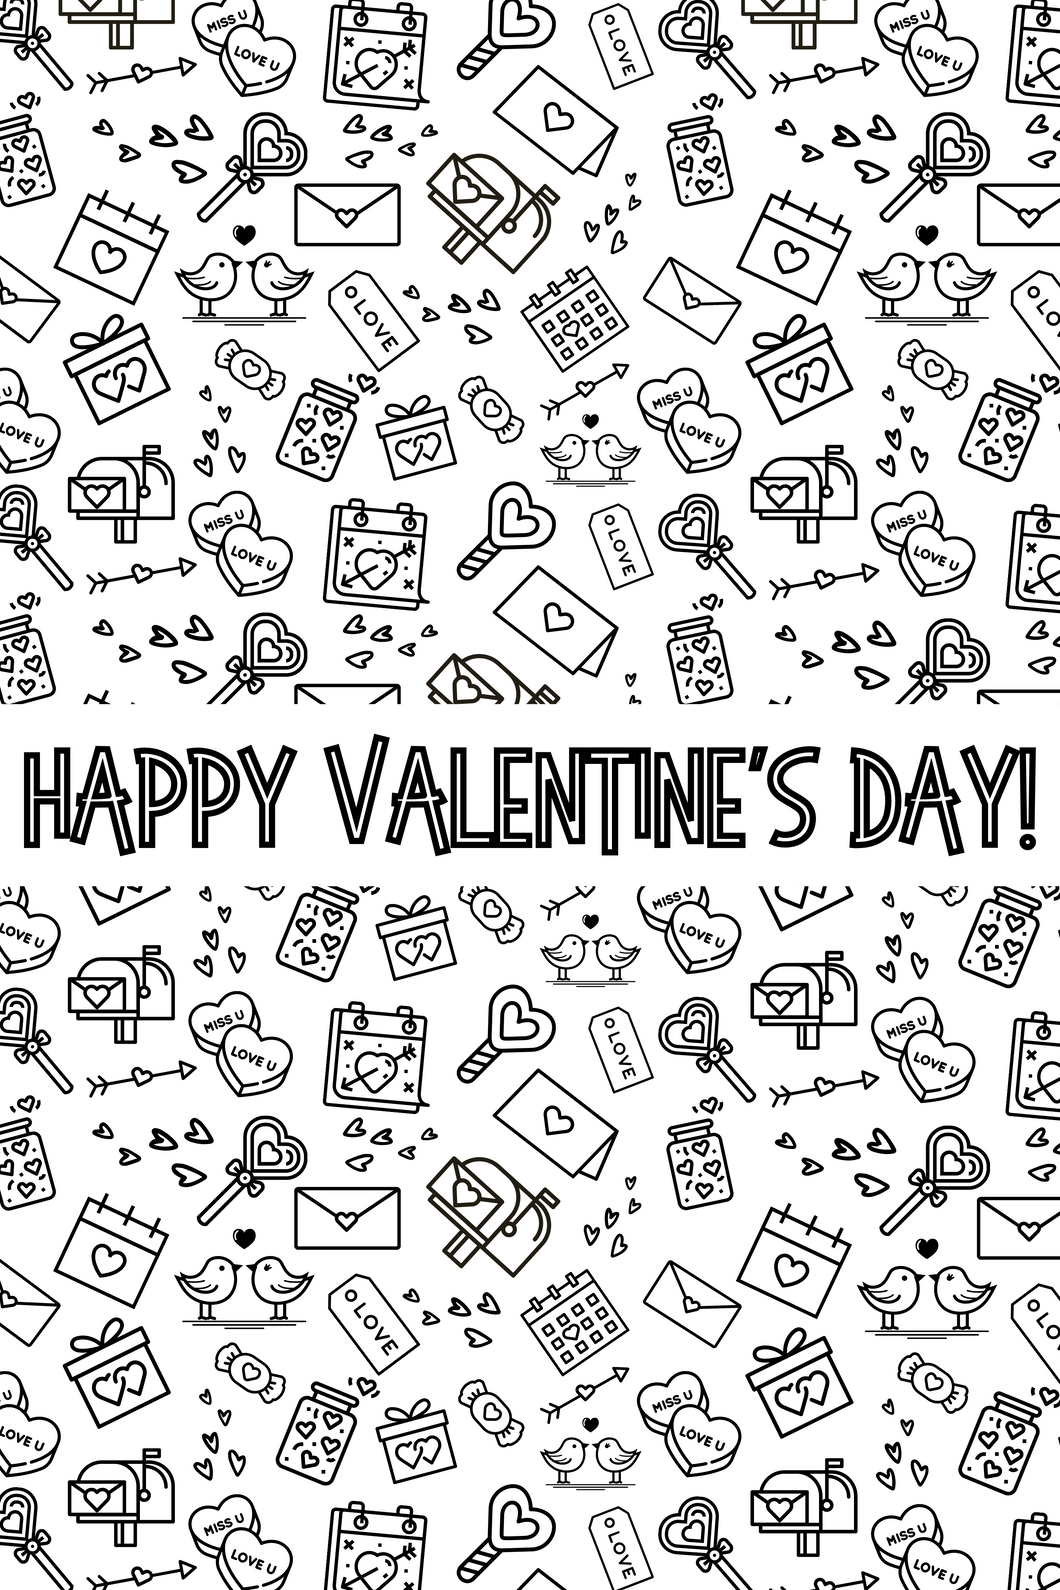 Happy Valentine's Day Coloring Poster